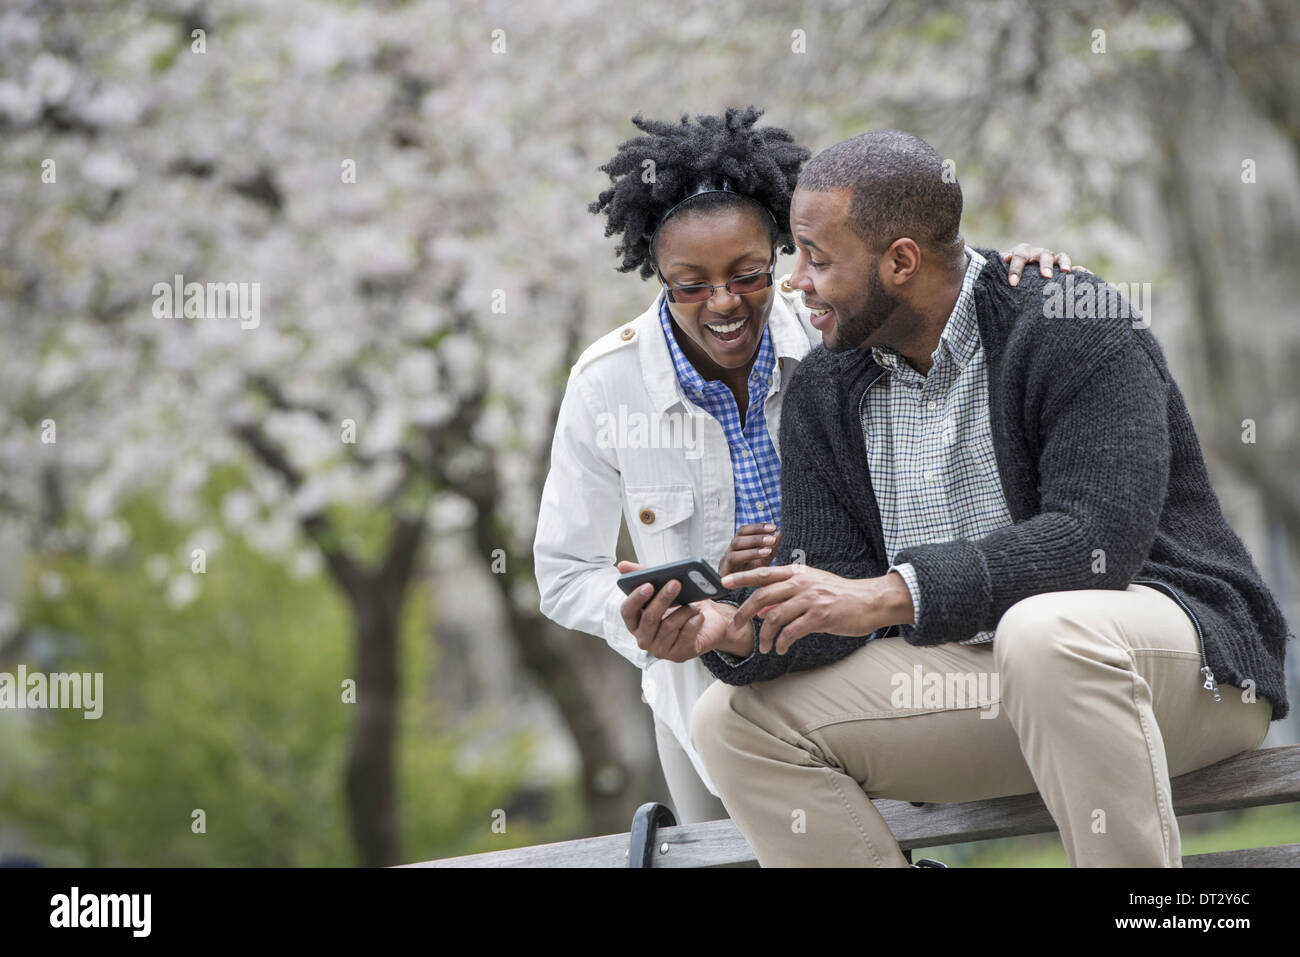 A couple sitting on a bench one holding a phone - Stock Image